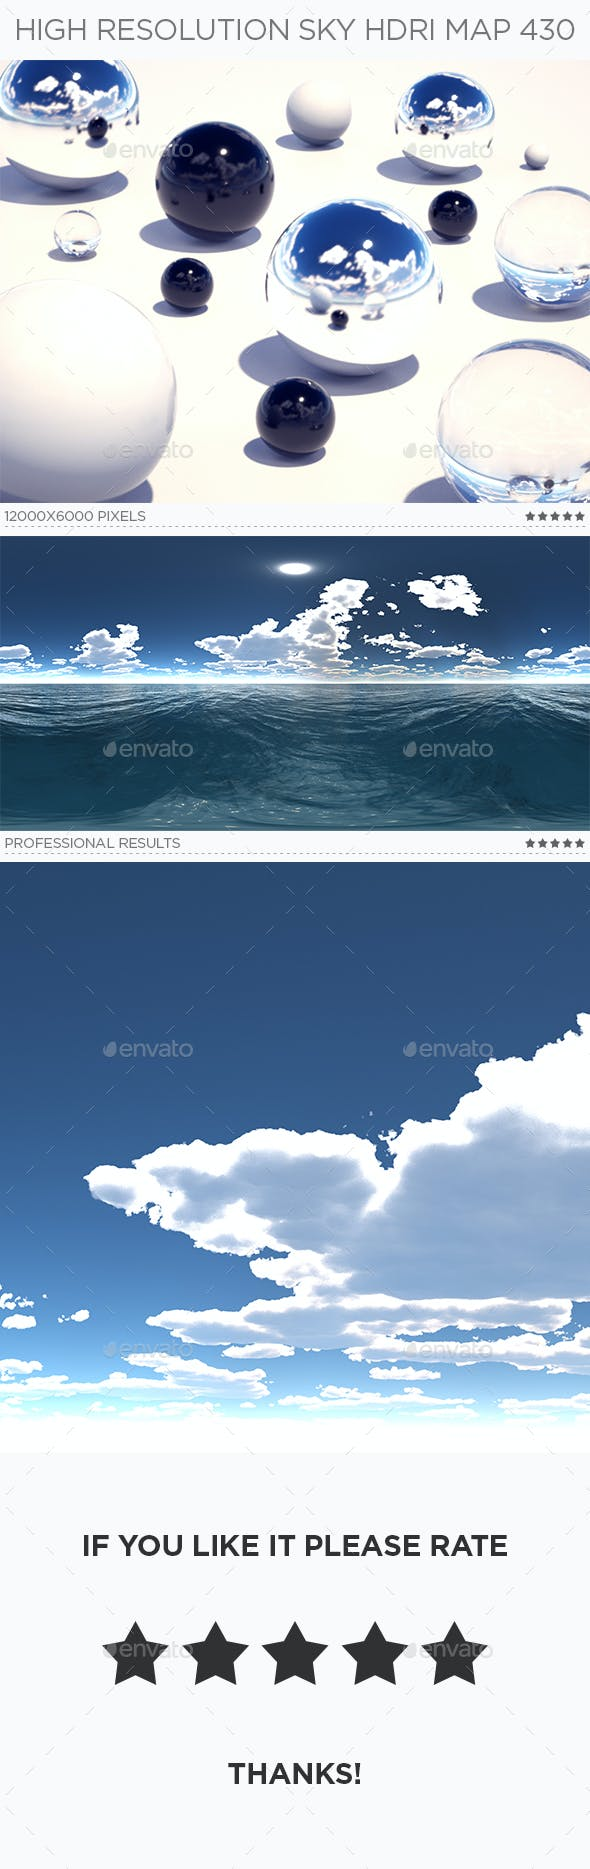 High Resolution Sky HDRi Map 430 - 3DOcean Item for Sale